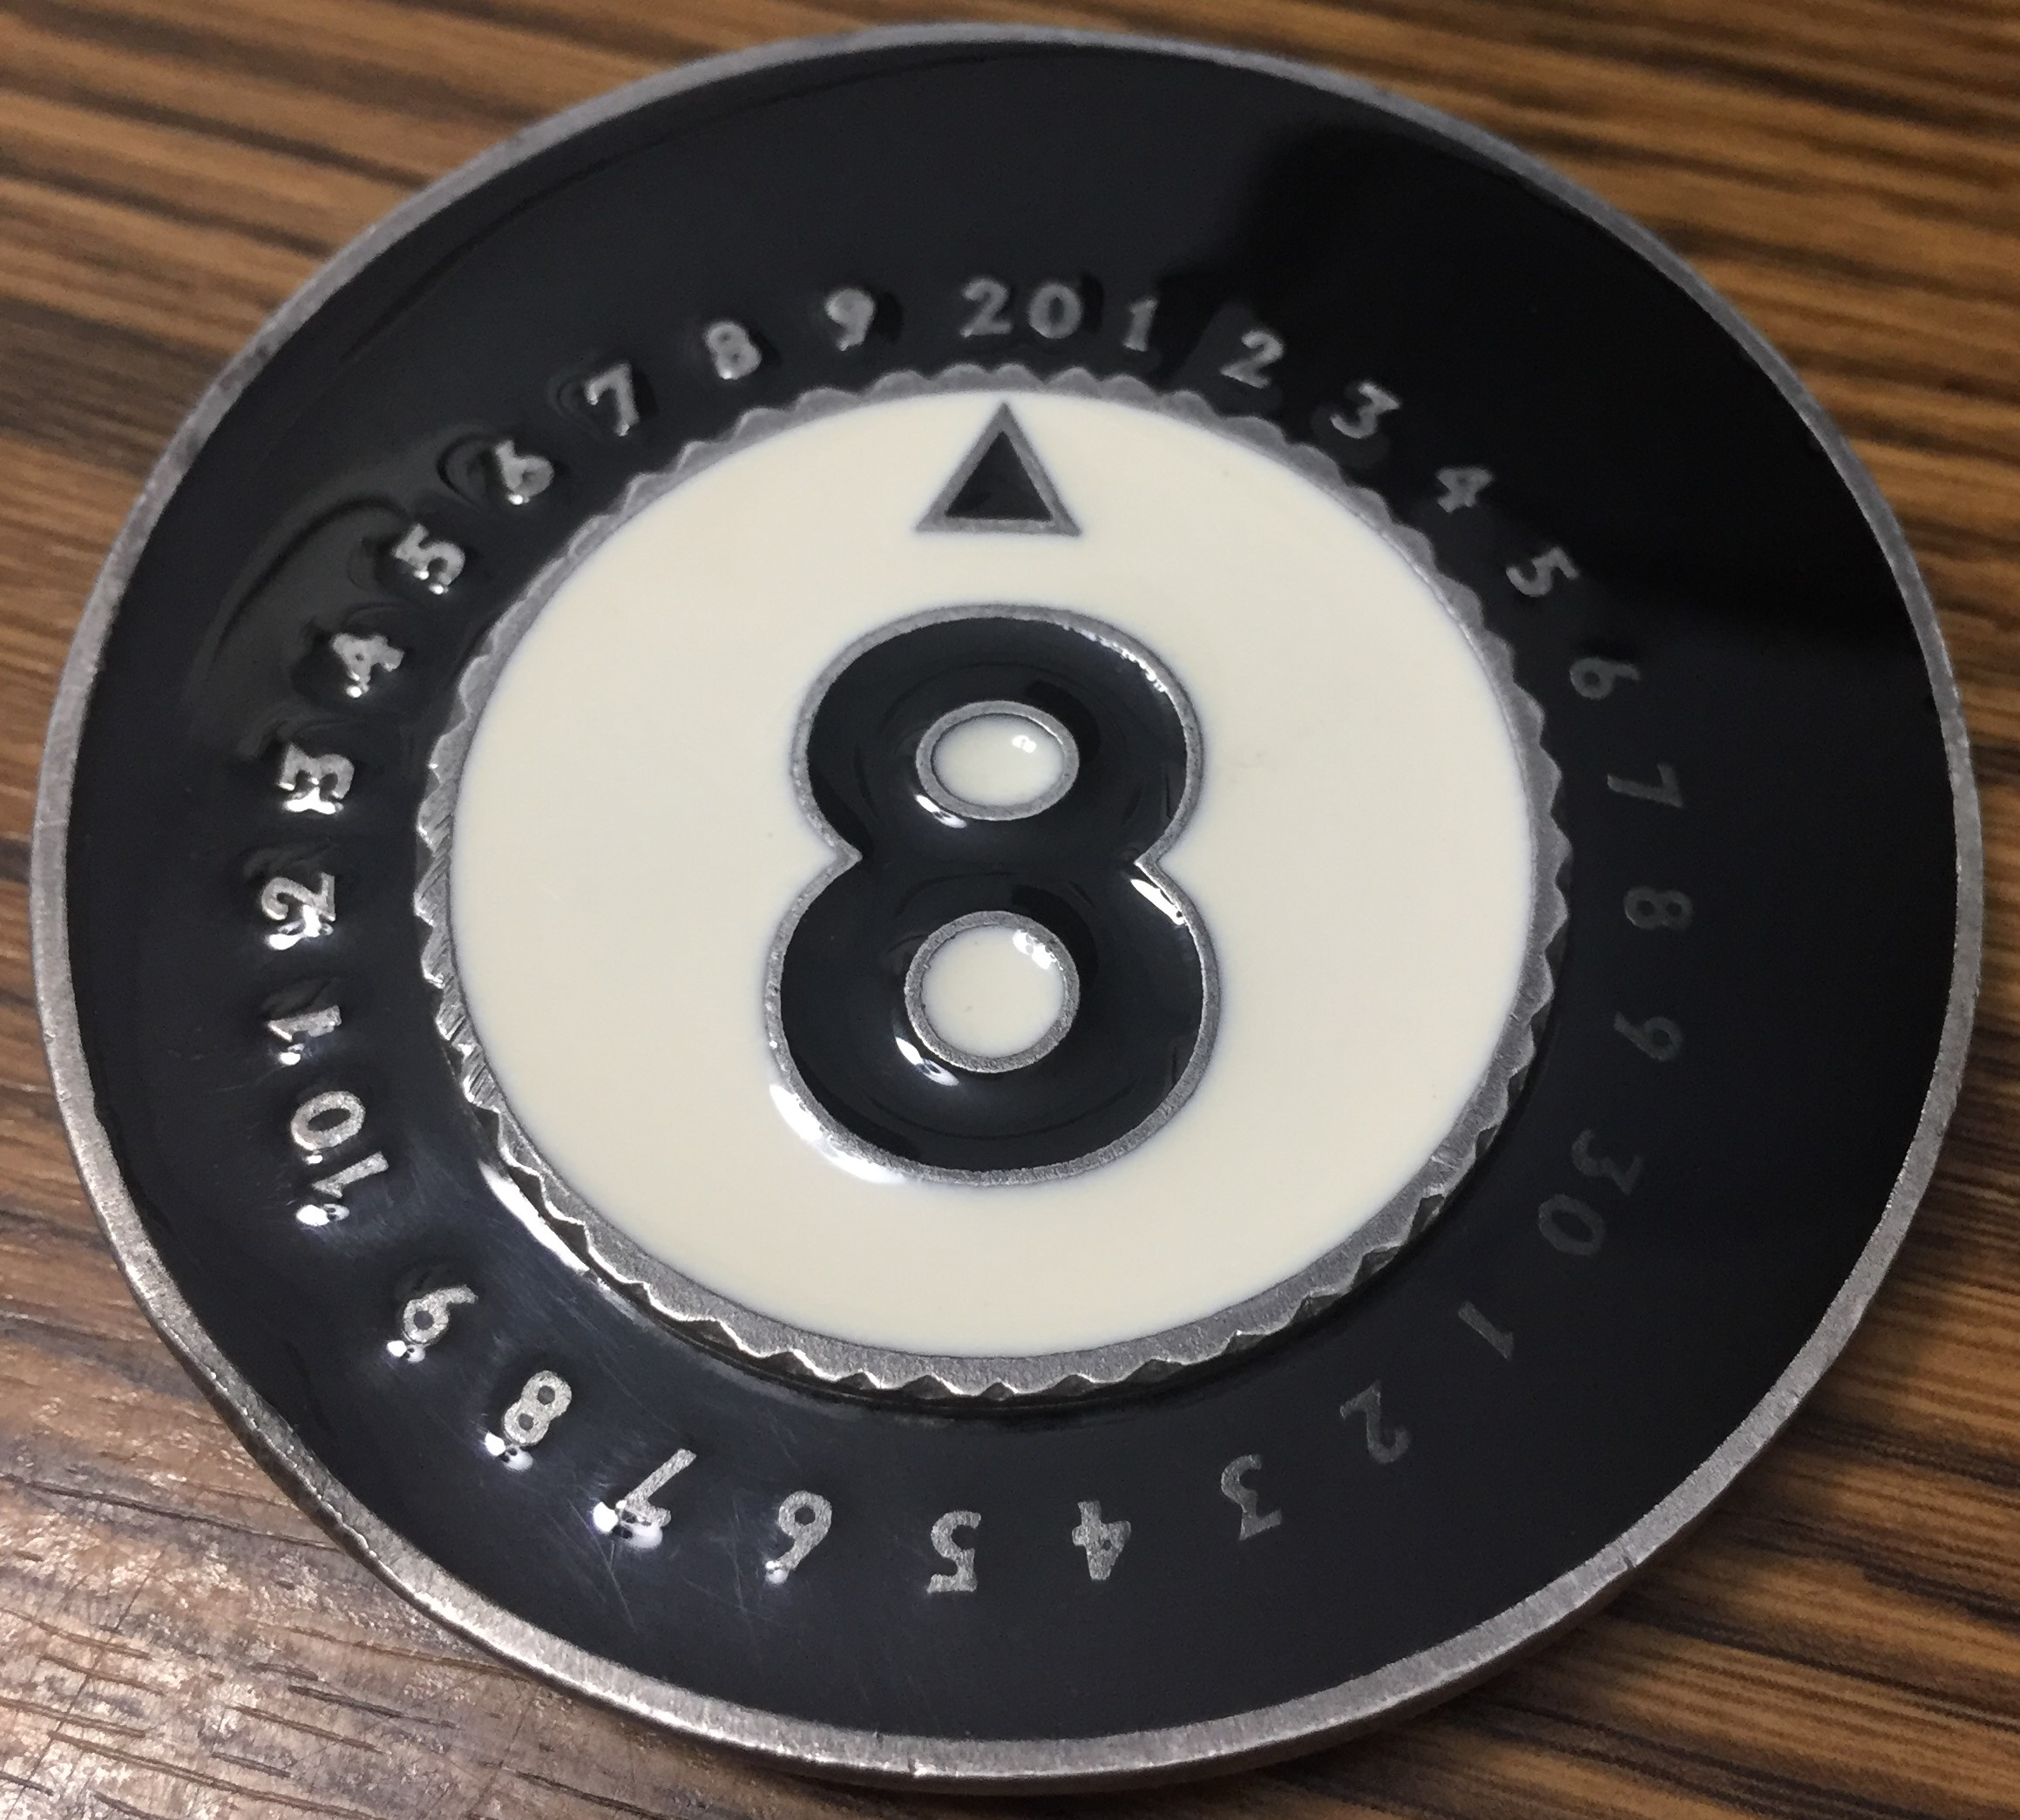 1996 Unhinged Magic 8 Ball ProCounters - Pro Counters Life Counter Reaper MTG Magic Miniatures Pewter Metal Enamel Procounter